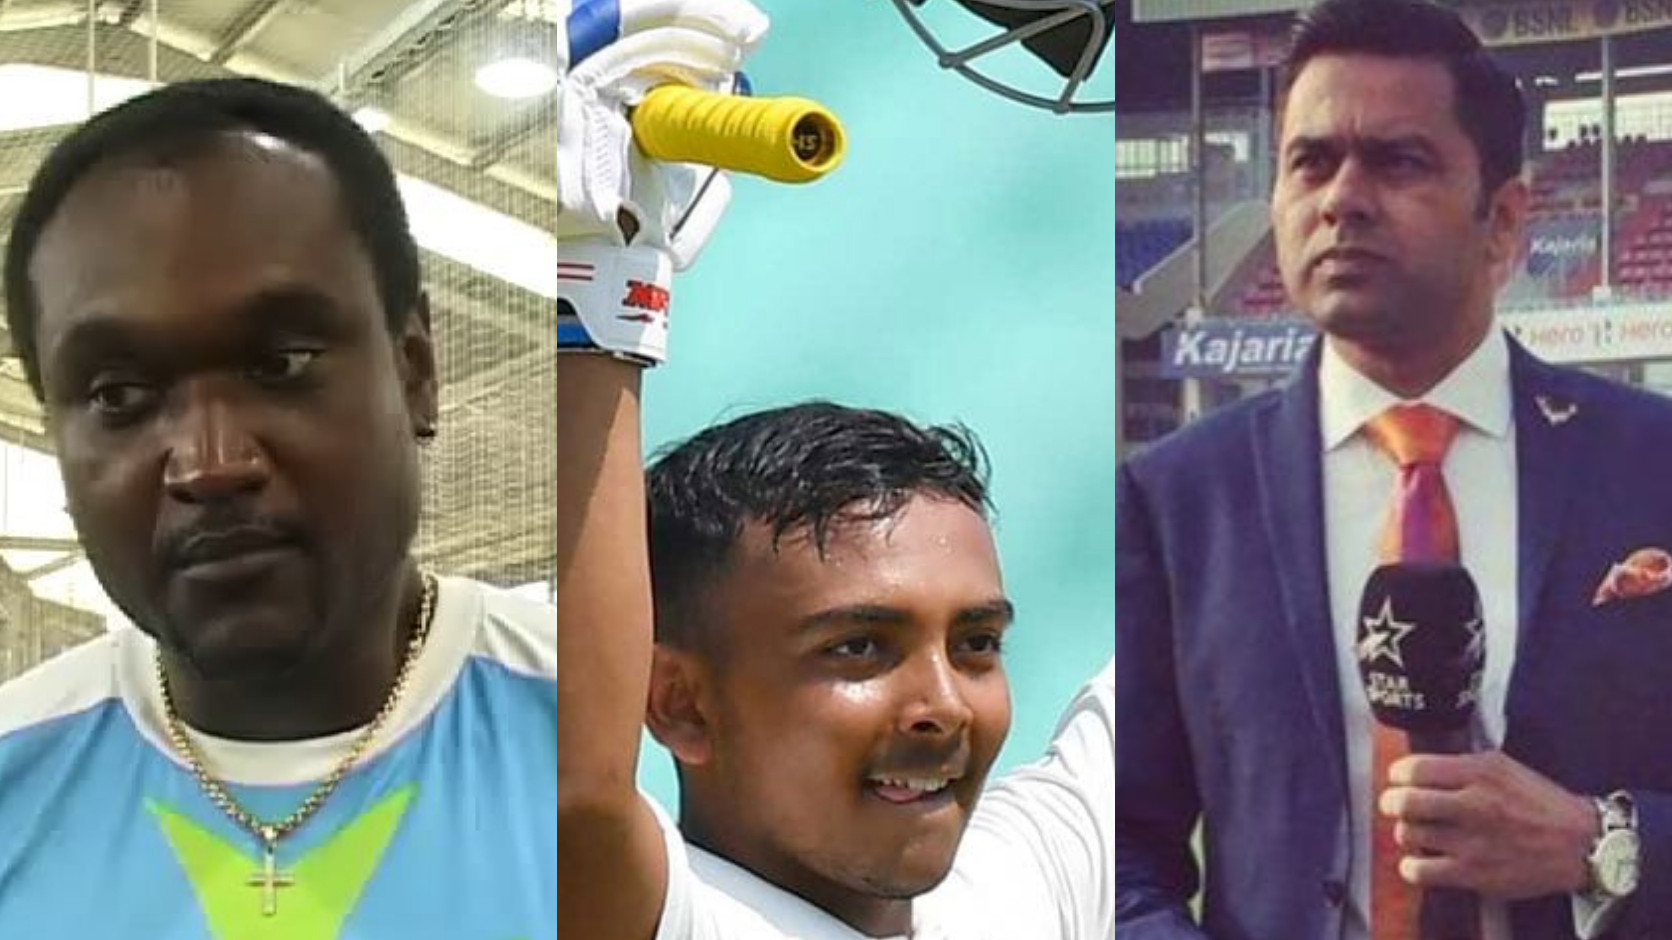 Prithvi Shaw needs some solidarity in his technique, opines cricket experts